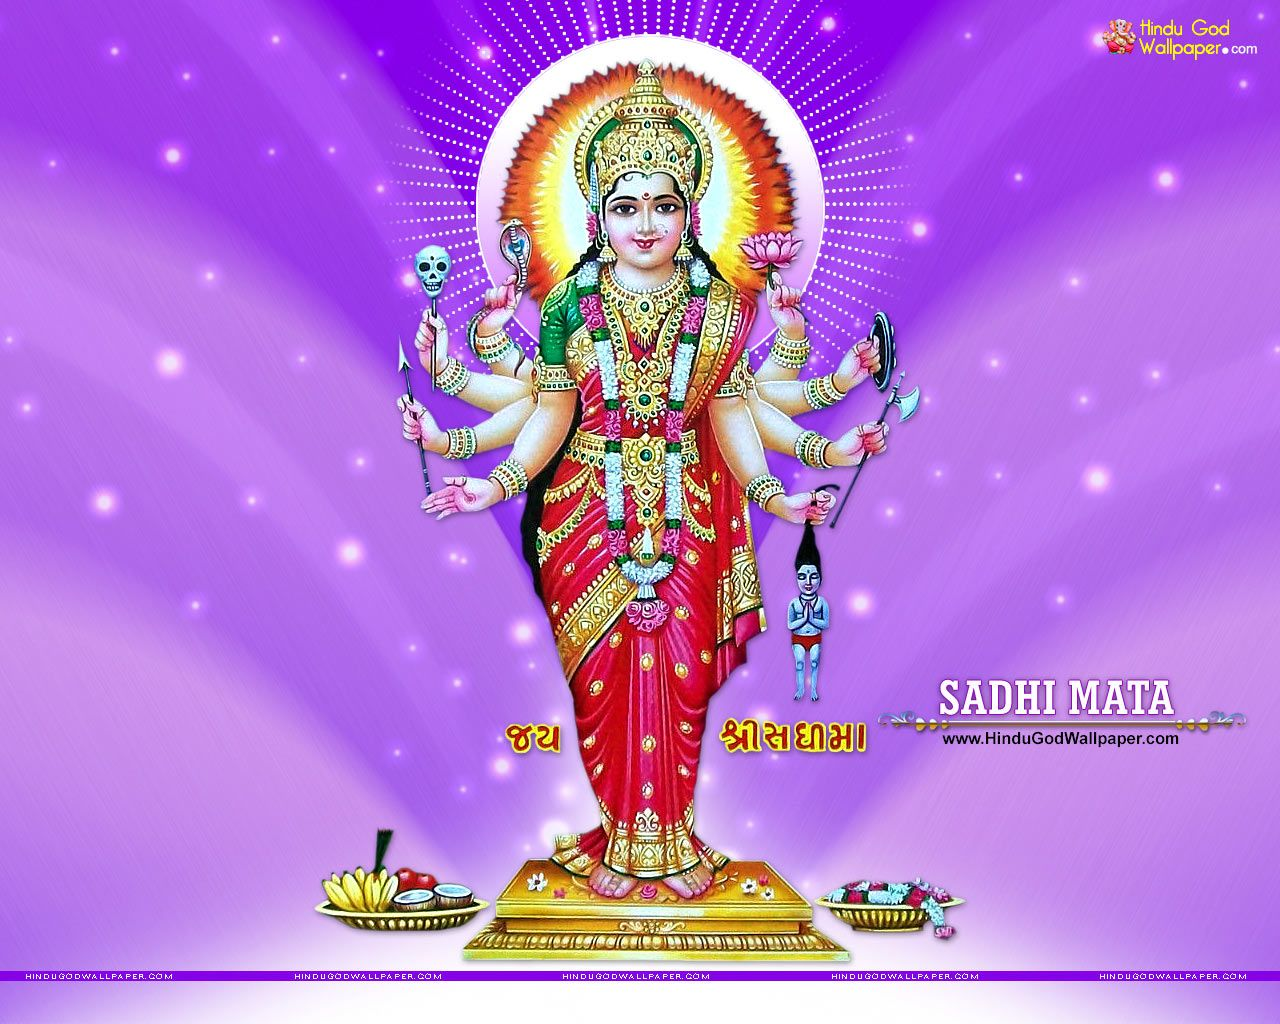 Sadhi Mata Wallpapers, Photos and Images Download